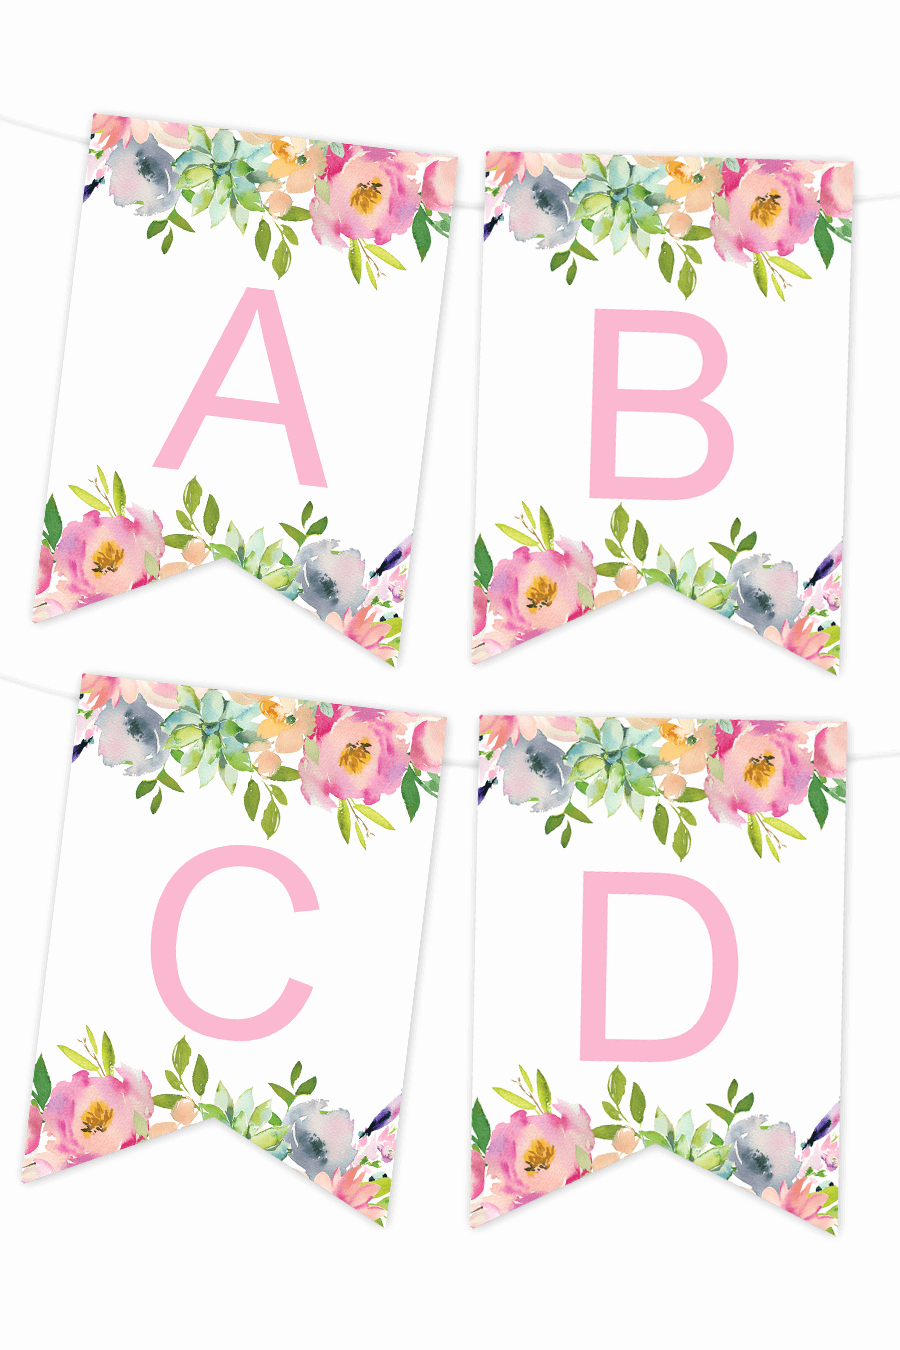 Free Printable Banner Templates Awesome Printable Banners Make Your Own Banners with Our